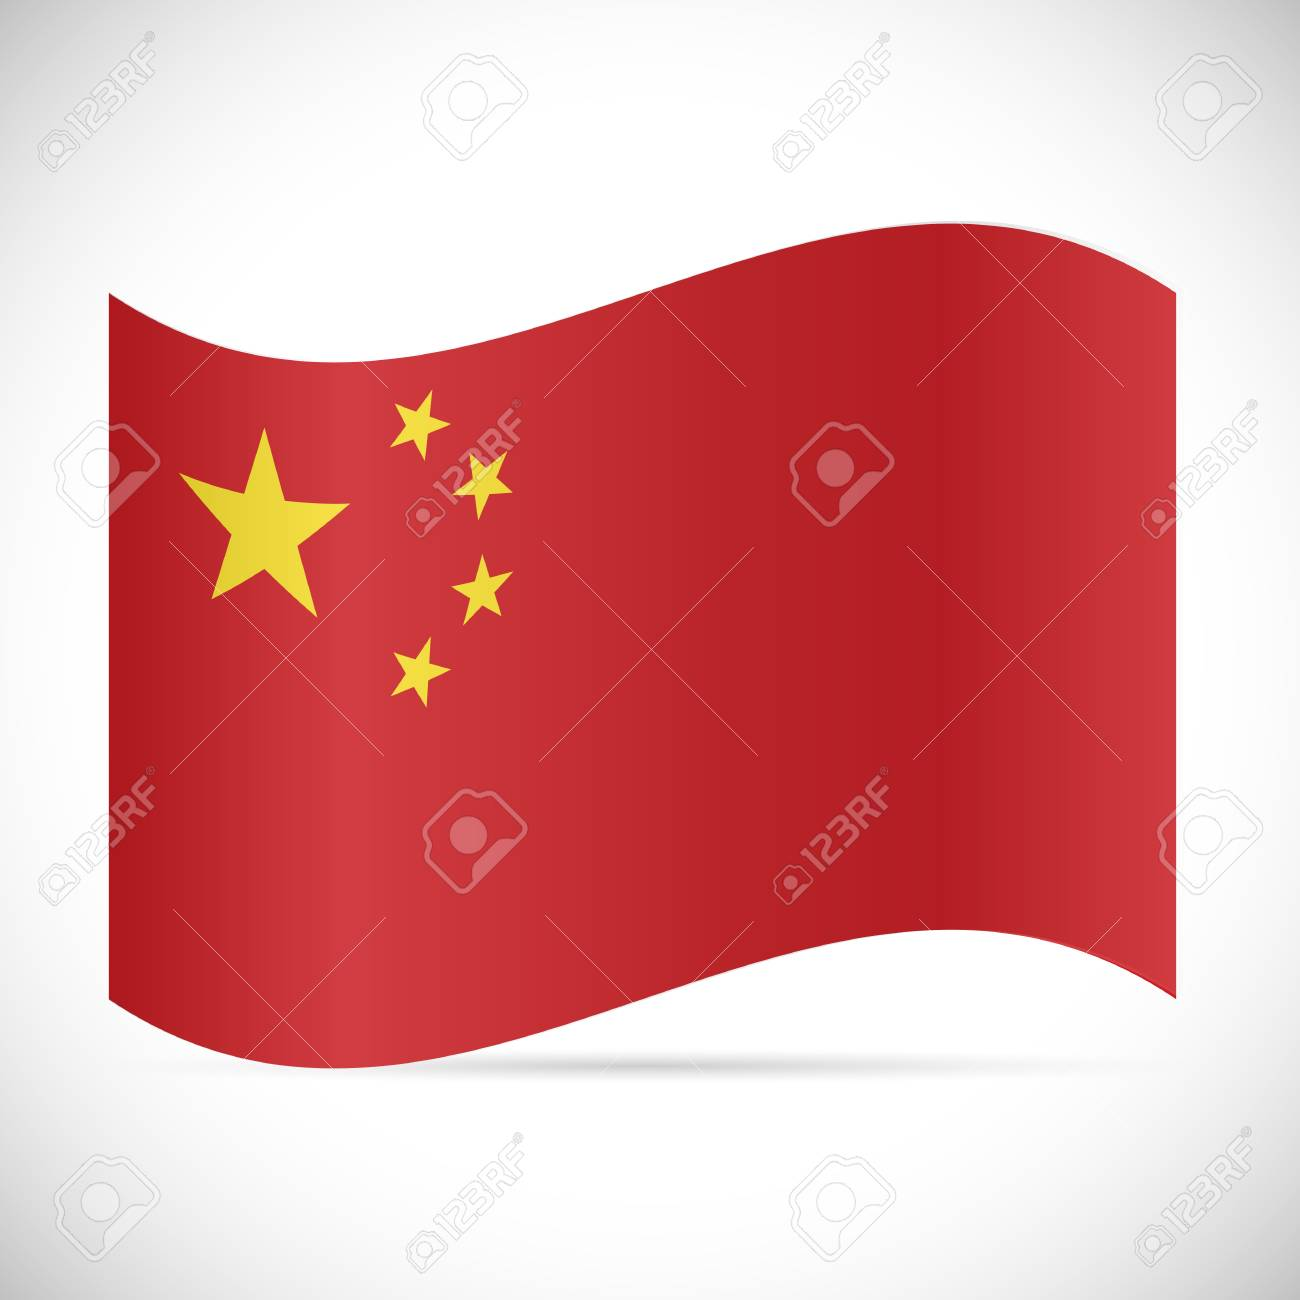 Illustration of the flag of China isolated on a white background. - 97102079